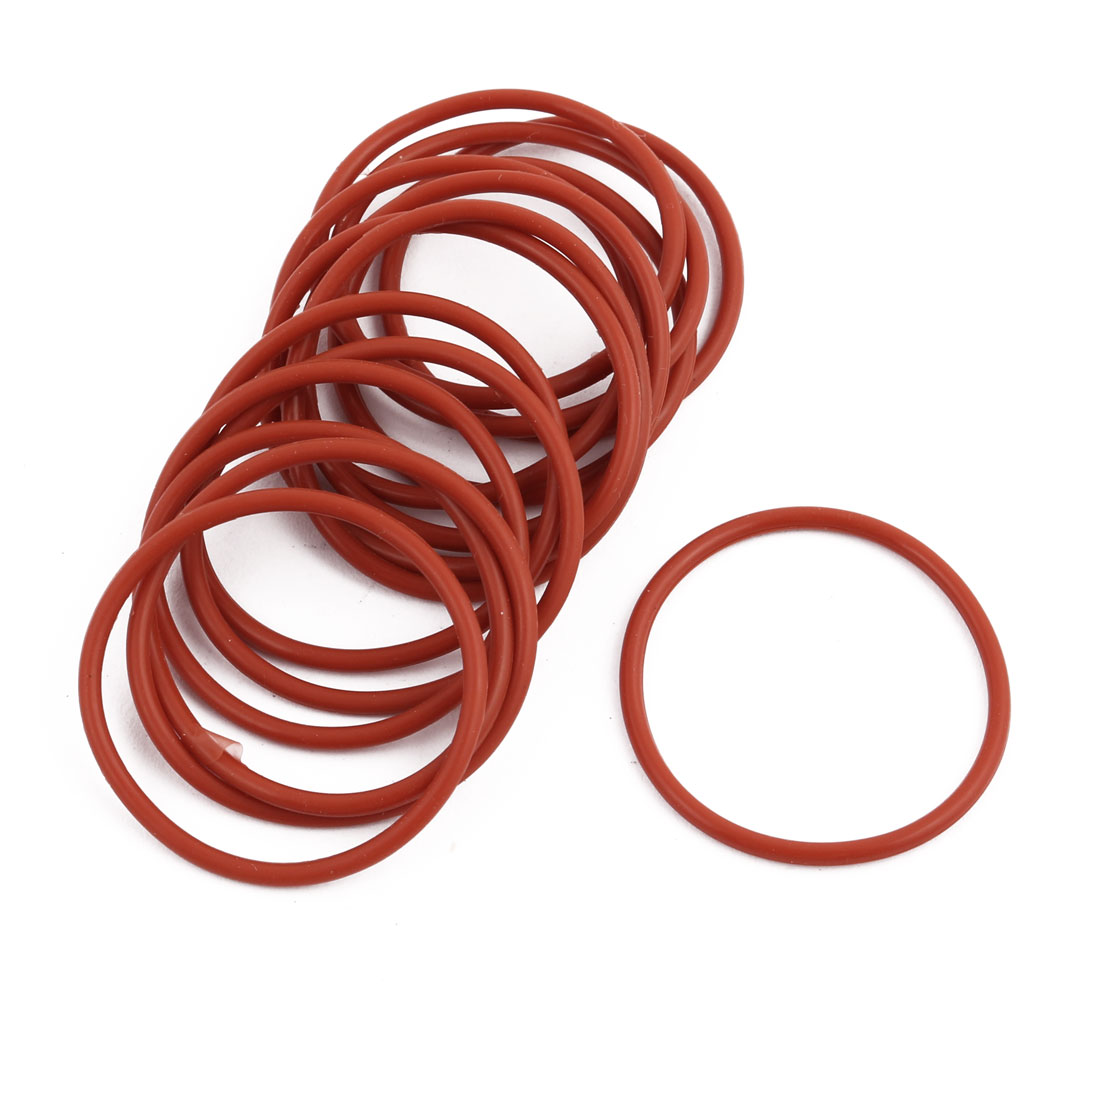 15pcs Red Round Nitrile Butadiene Rubber NBR O-Ring 32mm OD 1.9mm Width